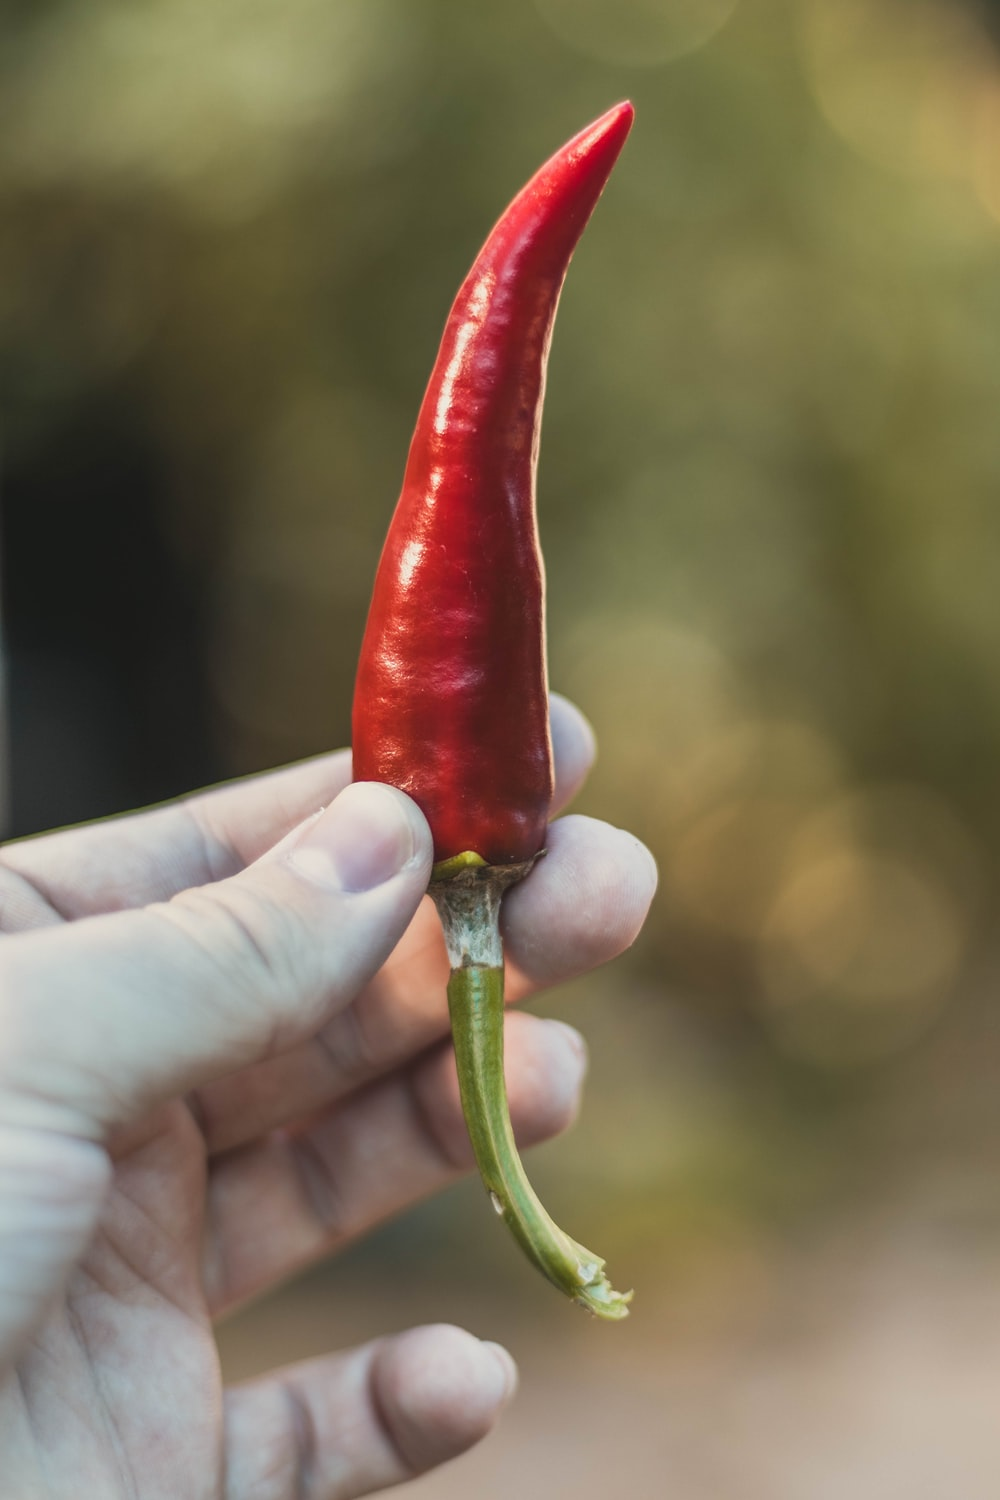 person holding red chili pepper